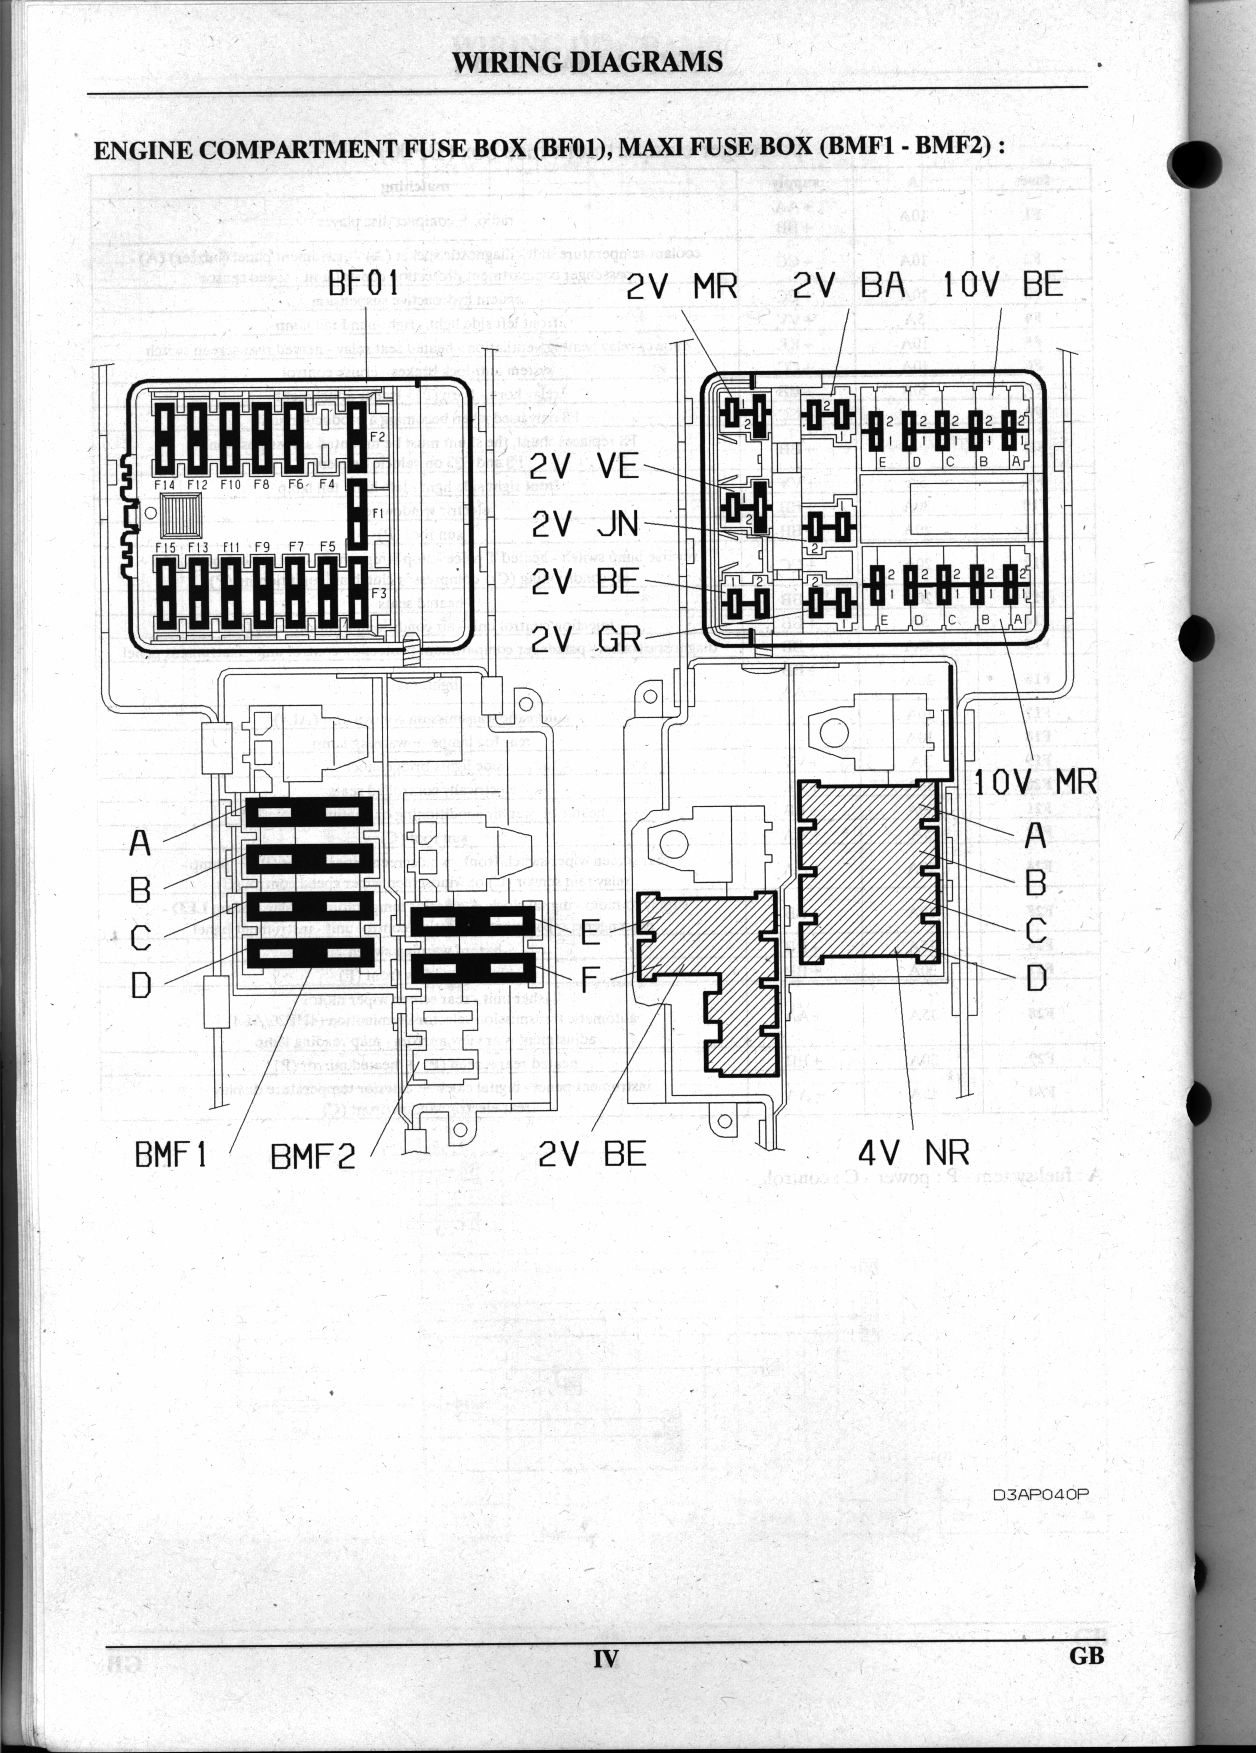 Citroen Xantia Fuse Box Diagram | Wiring Diagram on pico cable, pico with no equipment, pico electrical products, pico connector, pico distributors, pico eugene oregon, pico transformer,